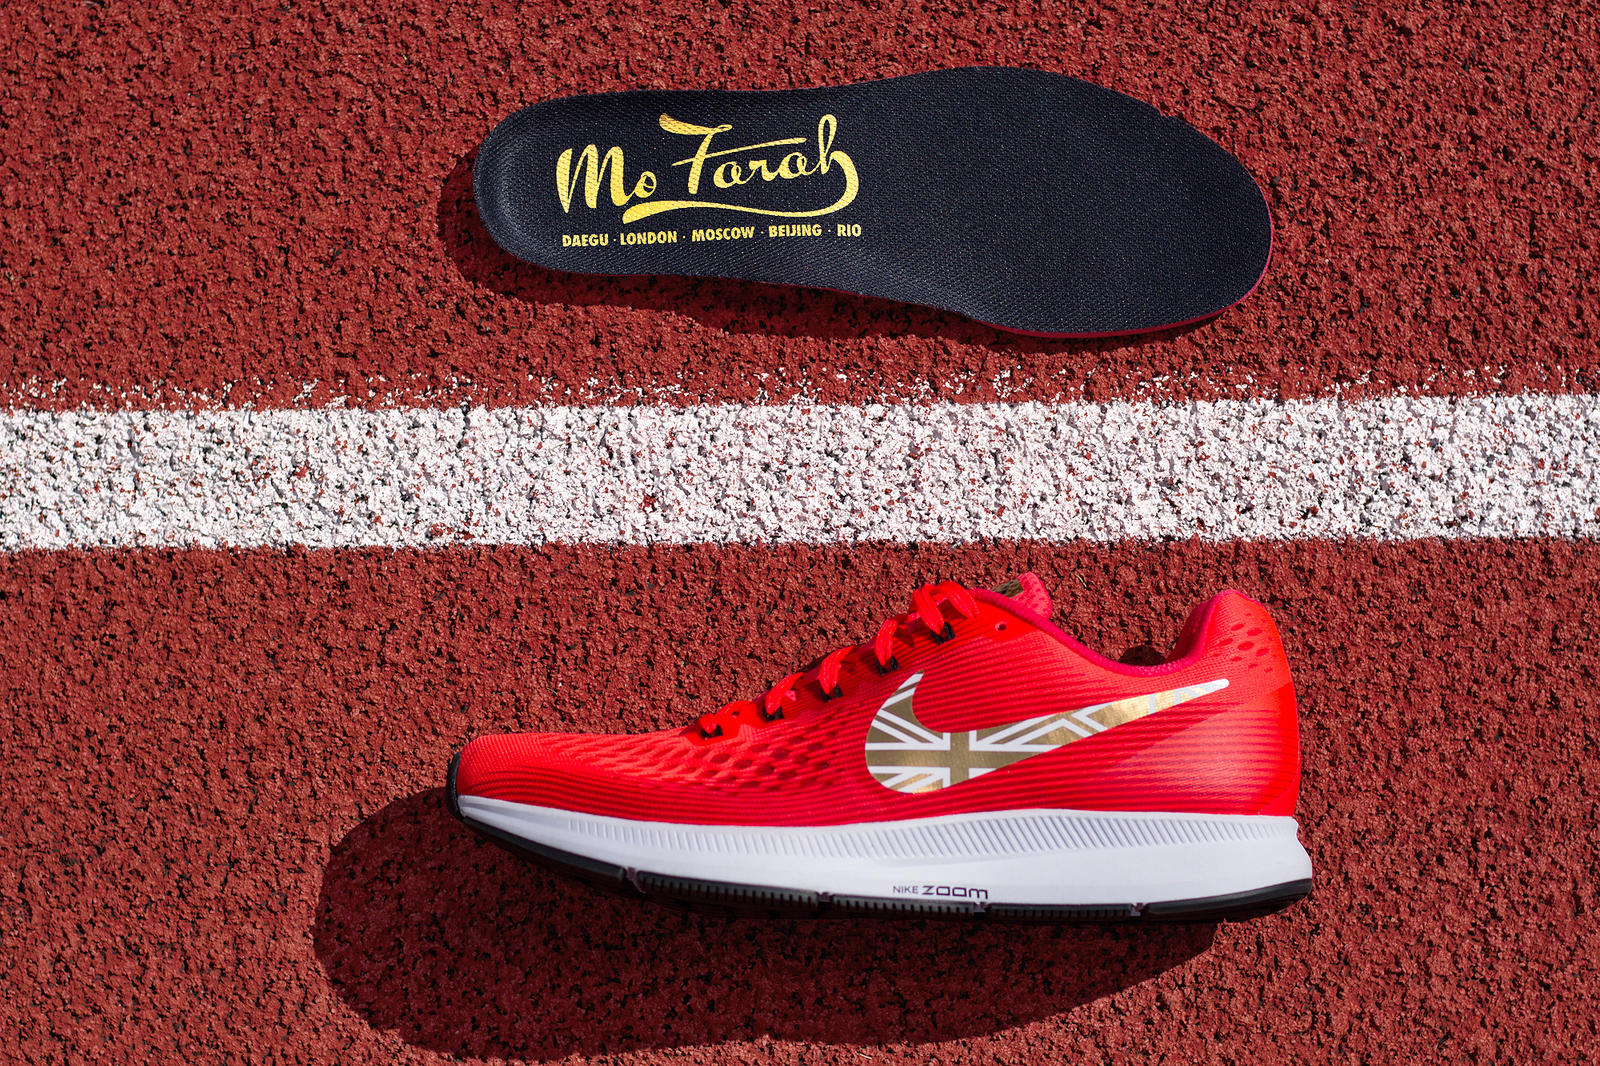 Nike Mo Farah Shoes